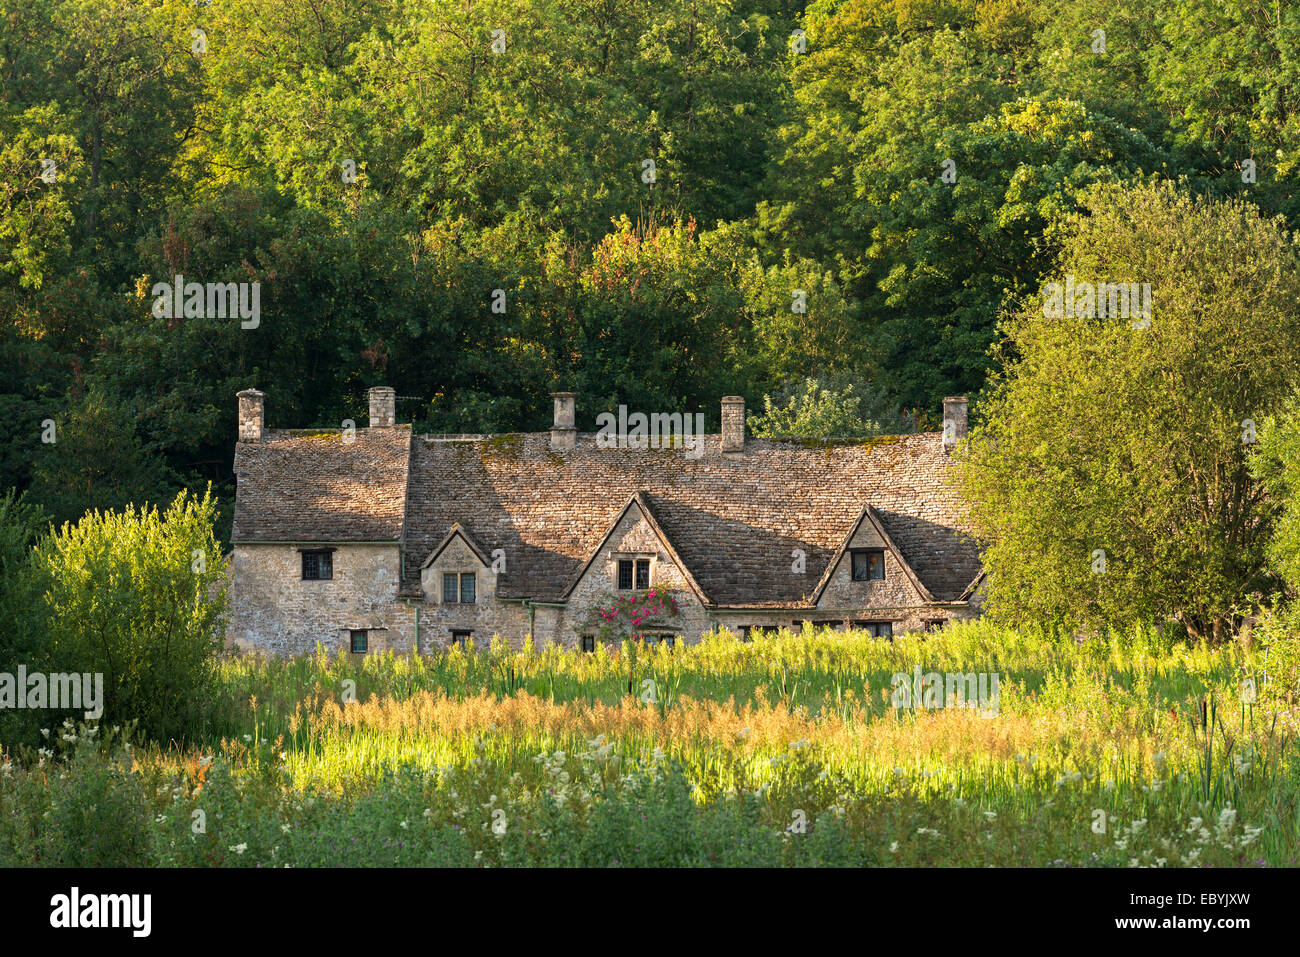 Arlington Row cottages in the Cotswold village of Bibury, Gloucestershire, England. Summer (July) 2014. - Stock Image